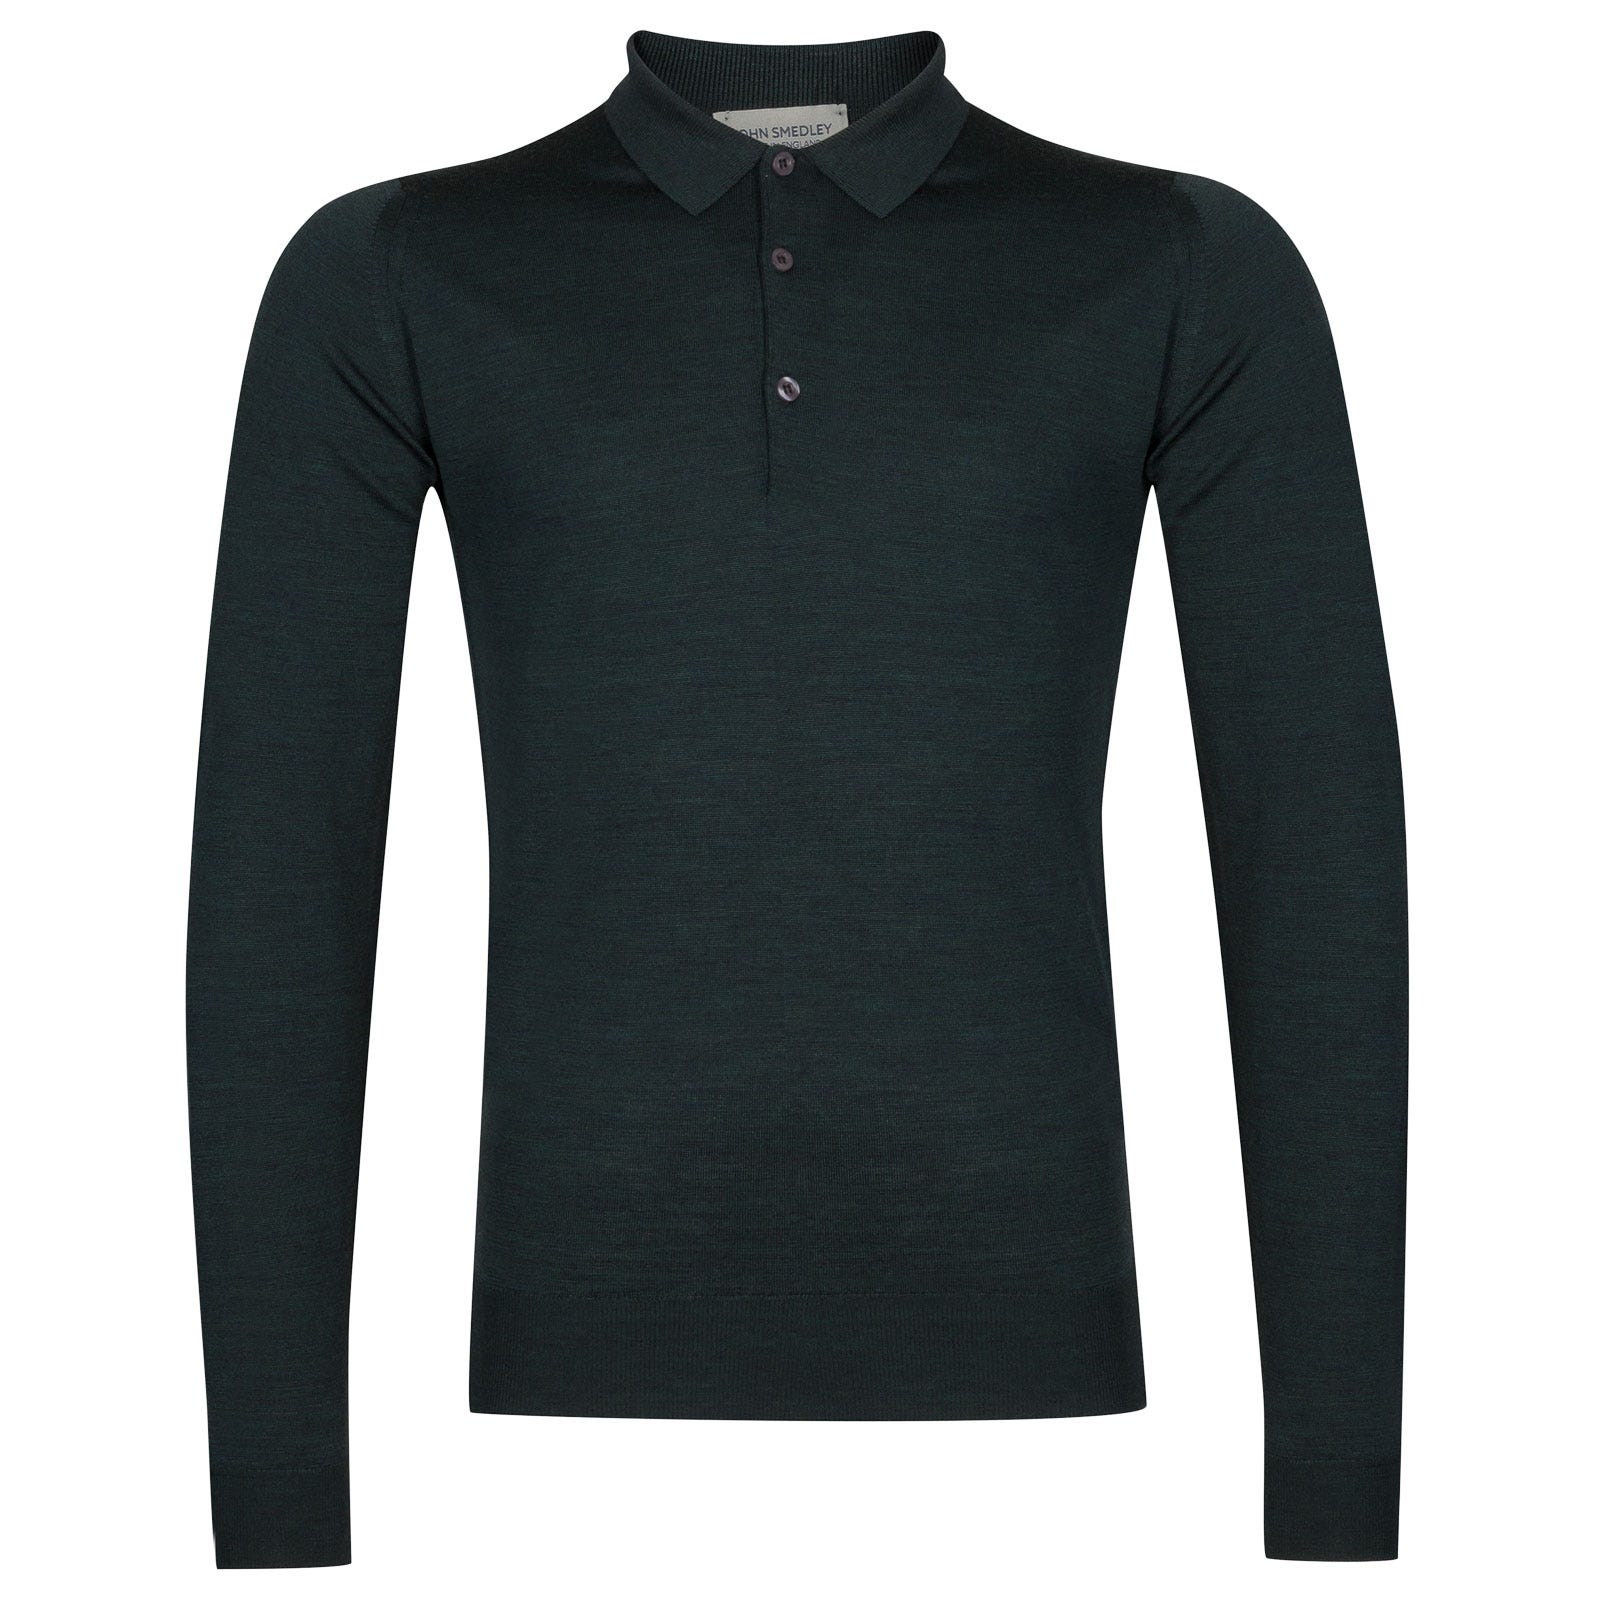 John Smedley Belper Merino Wool Shirt in Racing Green-S